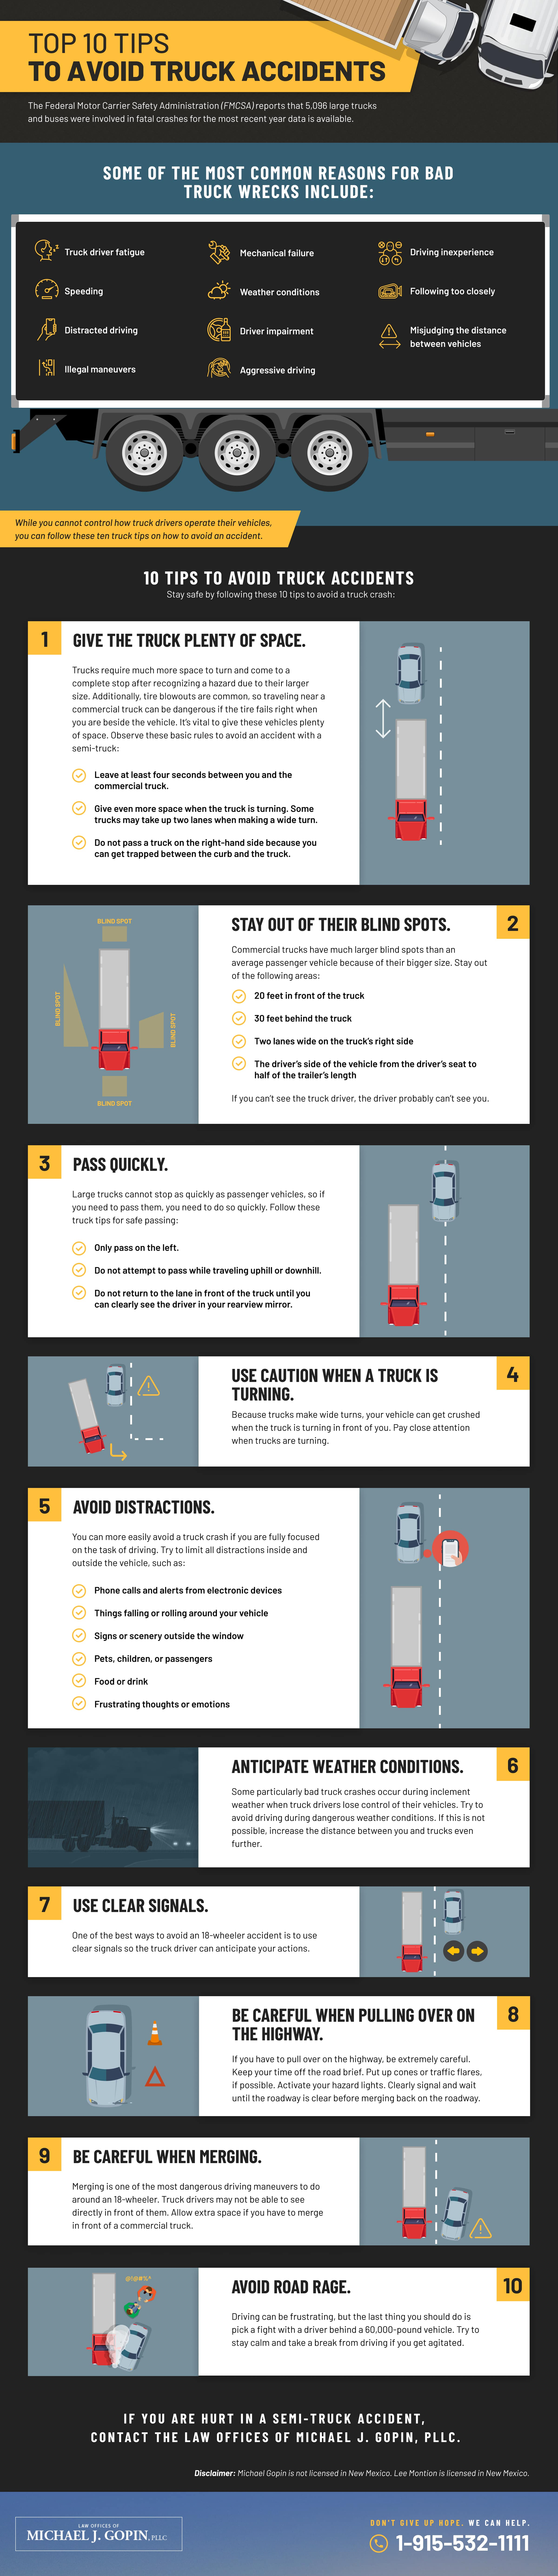 Top 10 Tips to avoid truck accident